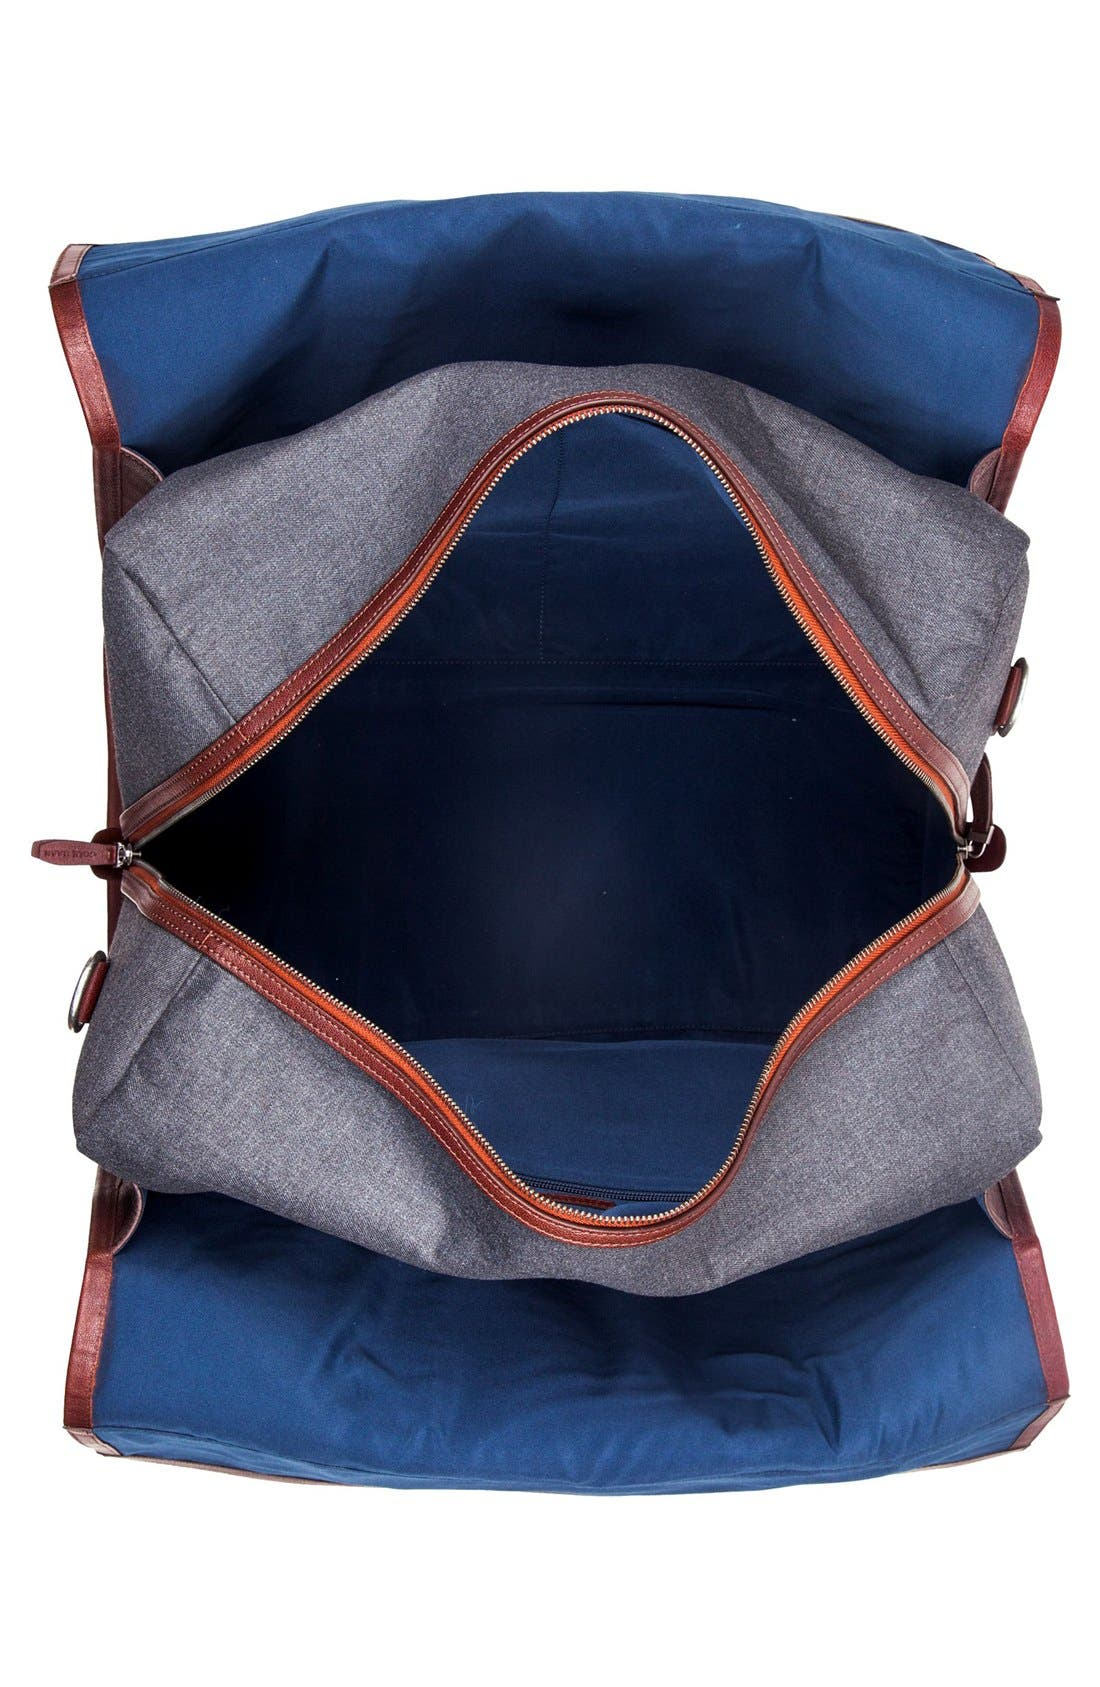 'Grafton' Duffel Bag,                             Alternate thumbnail 2, color,                             020